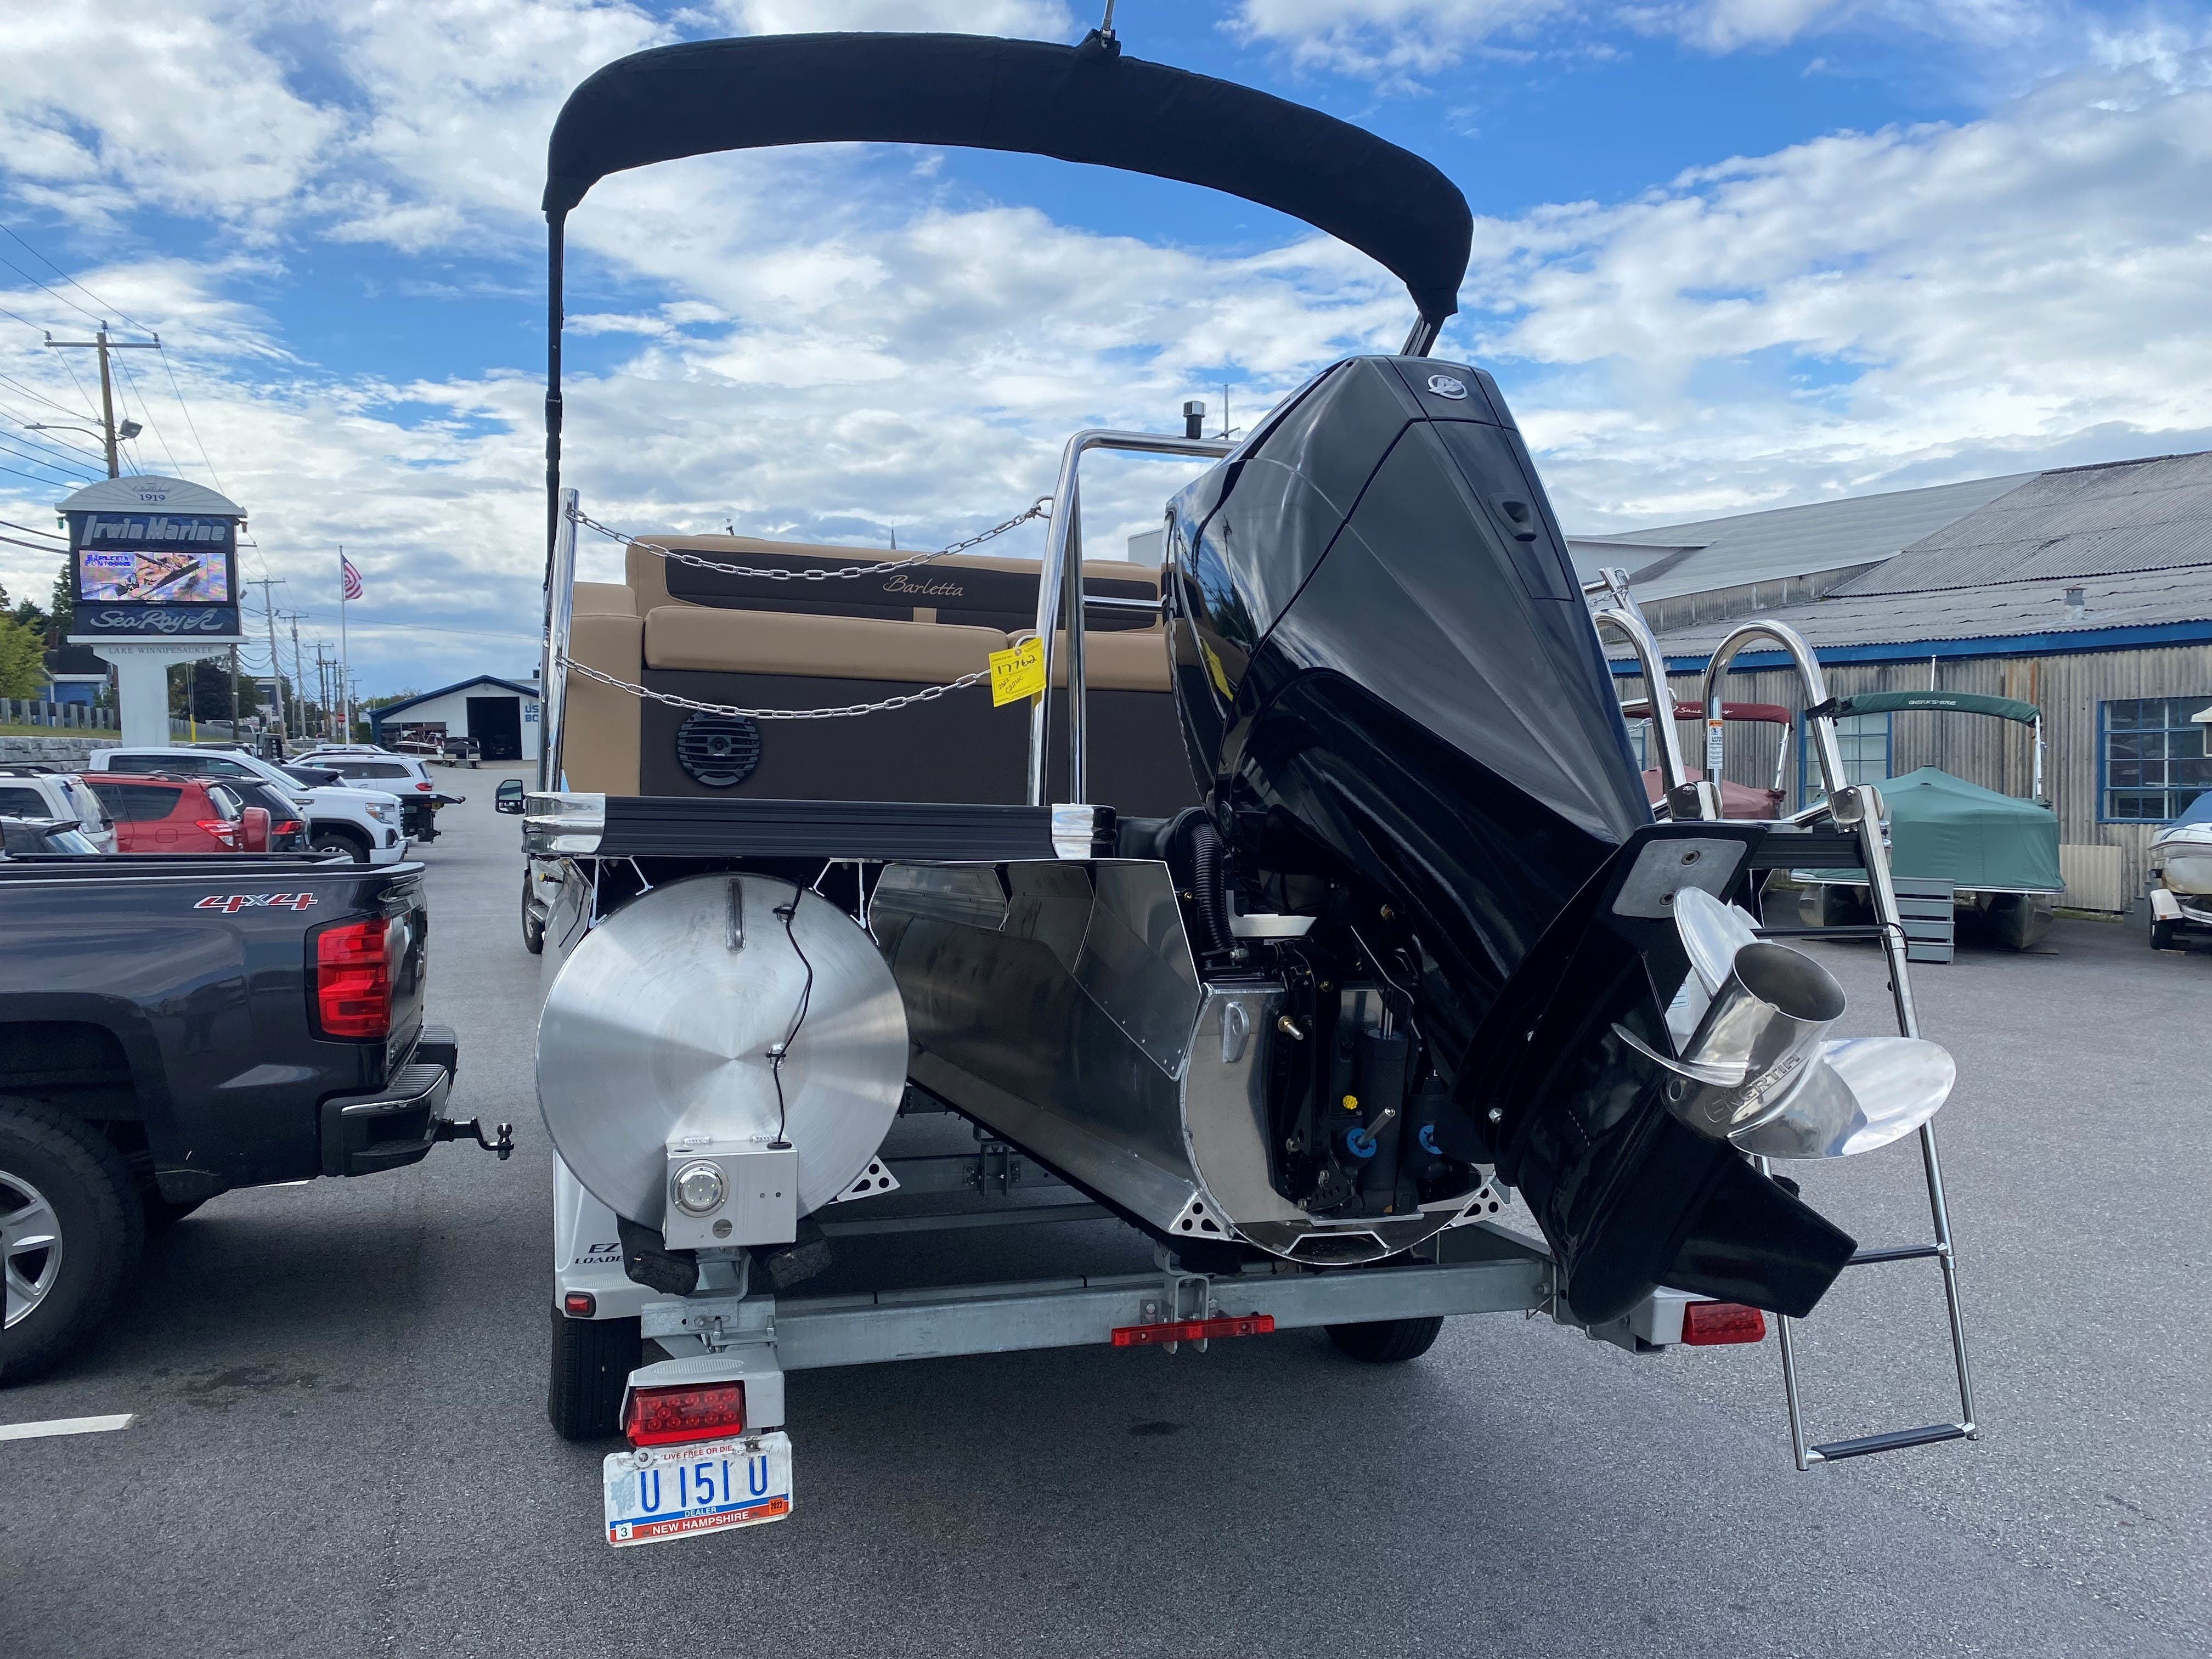 2022 Barletta boat for sale, model of the boat is C22UC & Image # 4 of 12